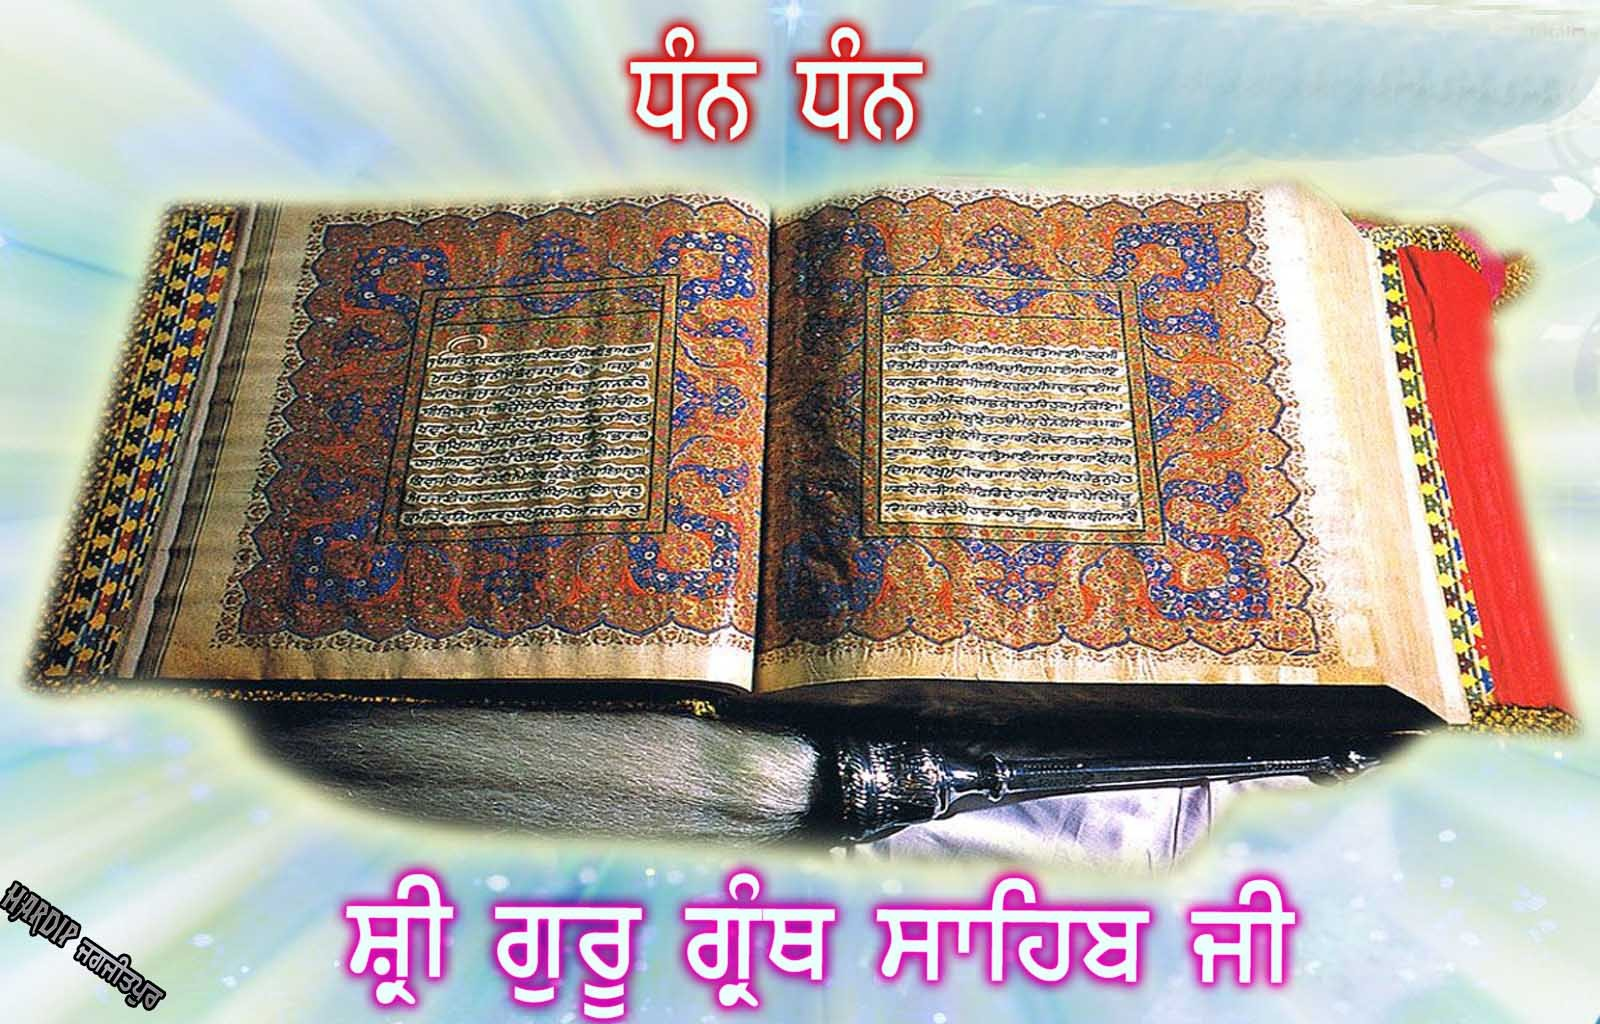 Hindi Shayari Quotes Wallpapers Dhan Dhan Shri Guru Granth Sahib Ji Desicomments Com